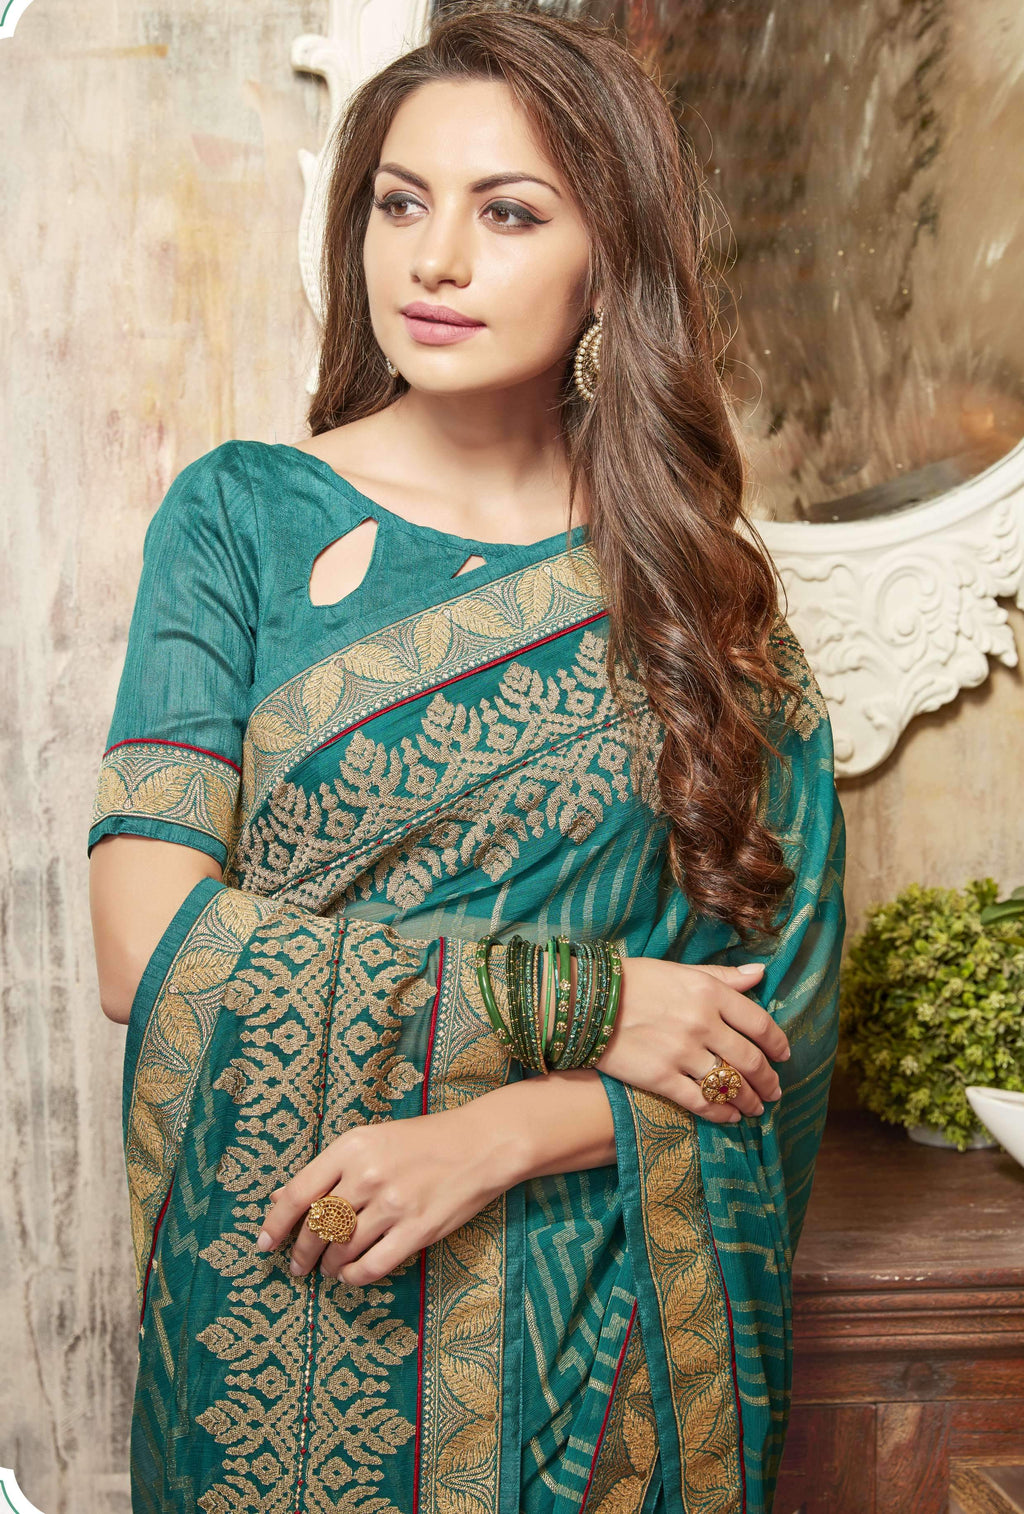 Green Color Wrinkle Chiffon Brasso Designer Function Wear Sarees : Gaurika Collection  NYF-1362 - YellowFashion.in